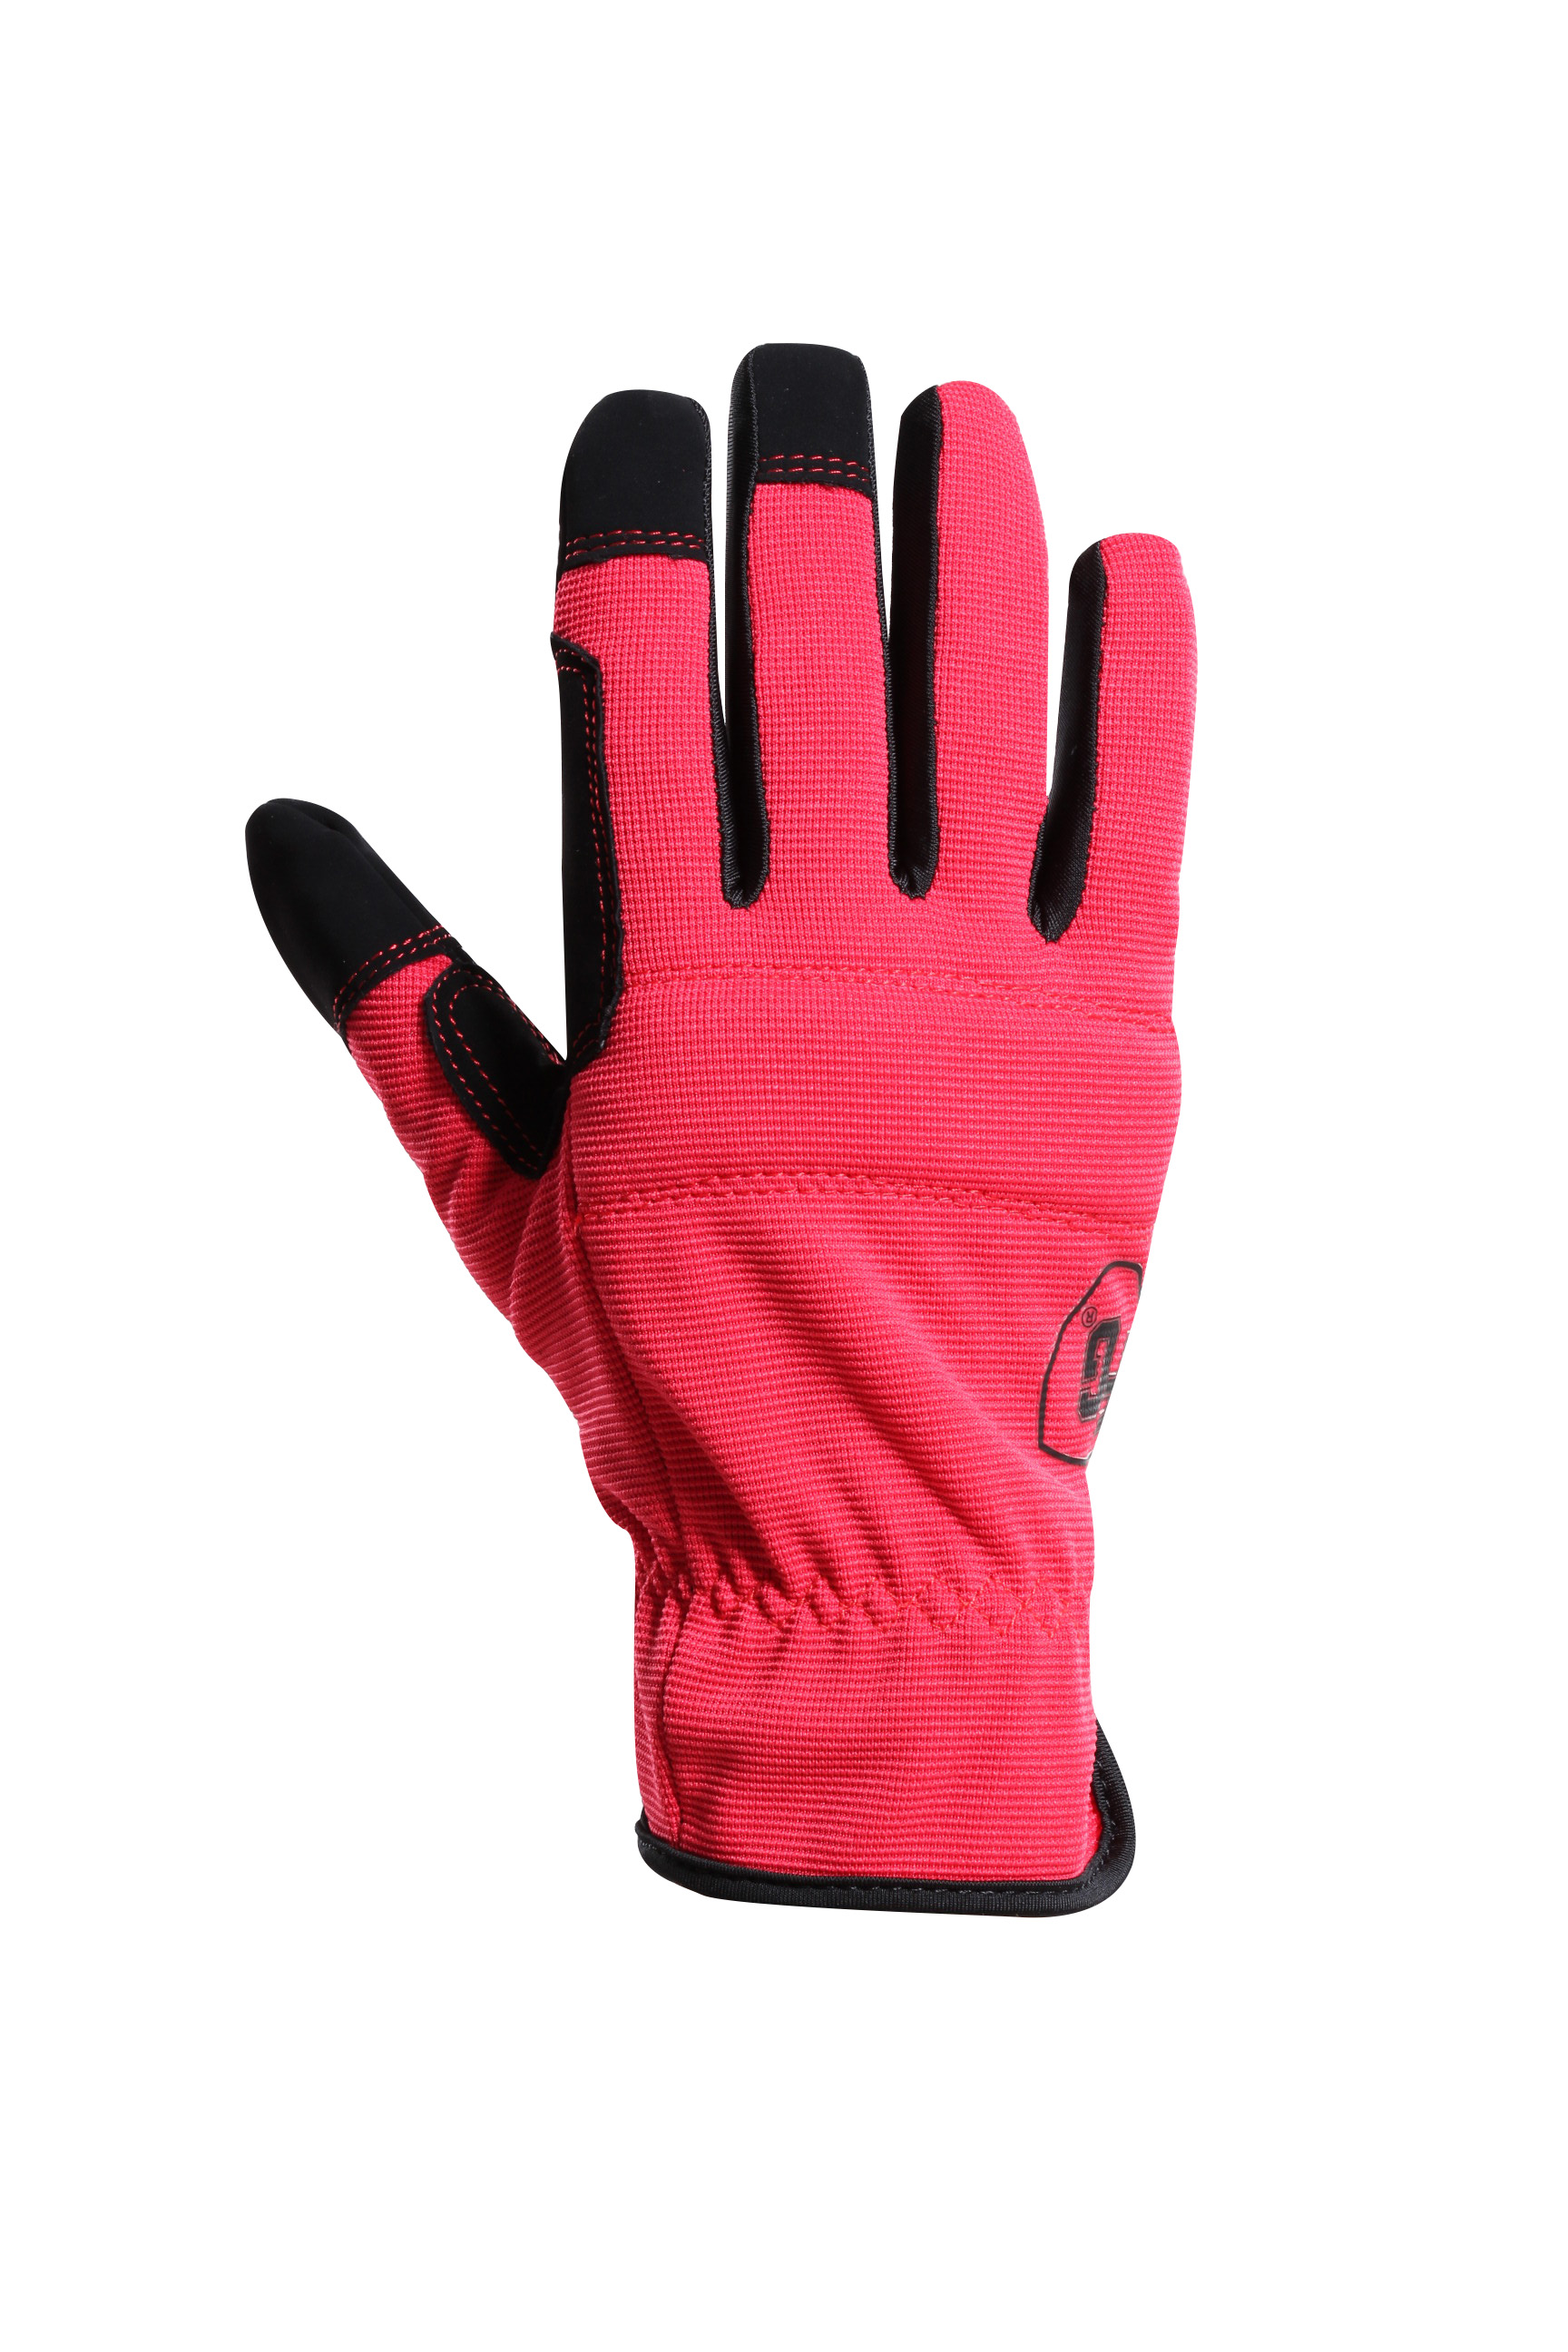 adults full finger cycling gloves